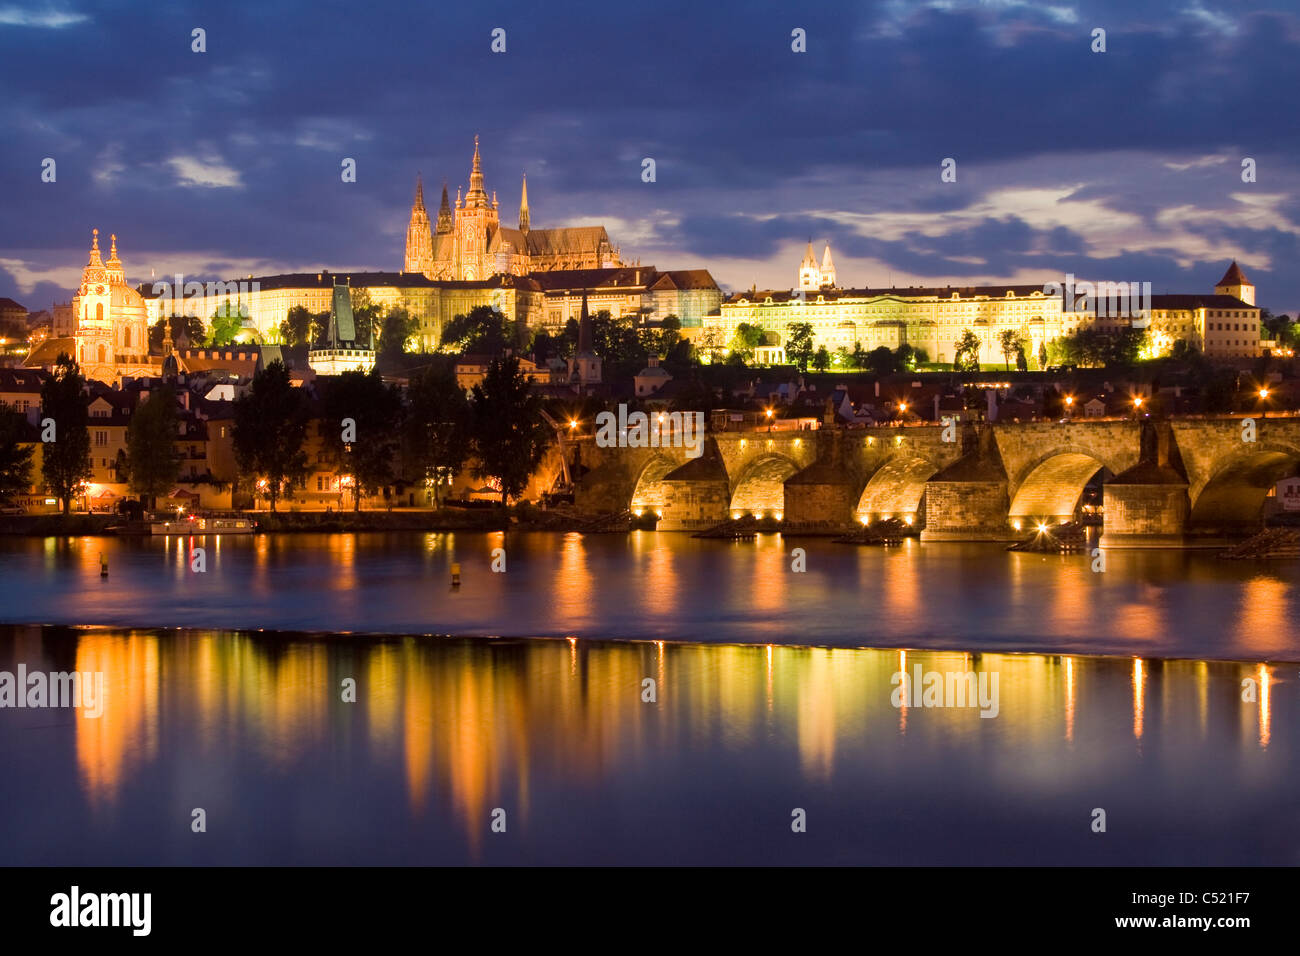 Evening mood at Charles Bridge in front of Prague Castle, Castle District, Hradcany, Prague, Czech Republic, Europe - Stock Image